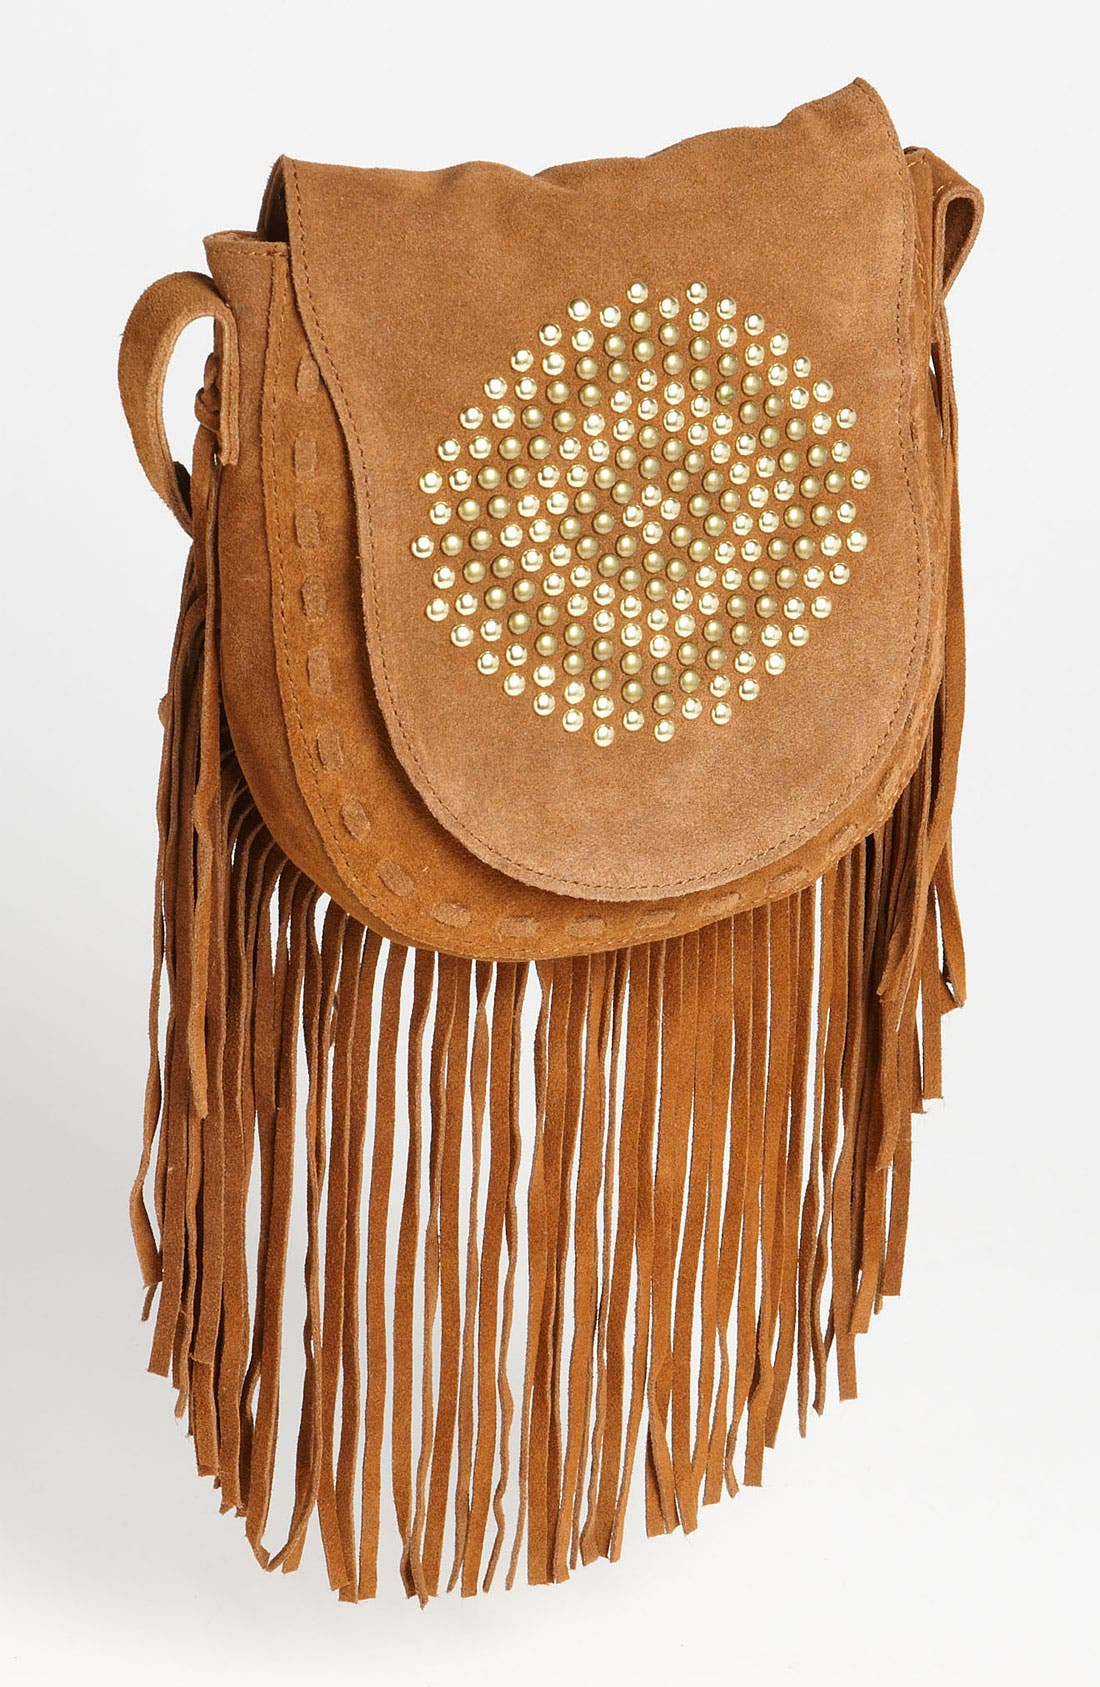 Main Image - Steve Madden 'On the Fringe' Crossbody Bag